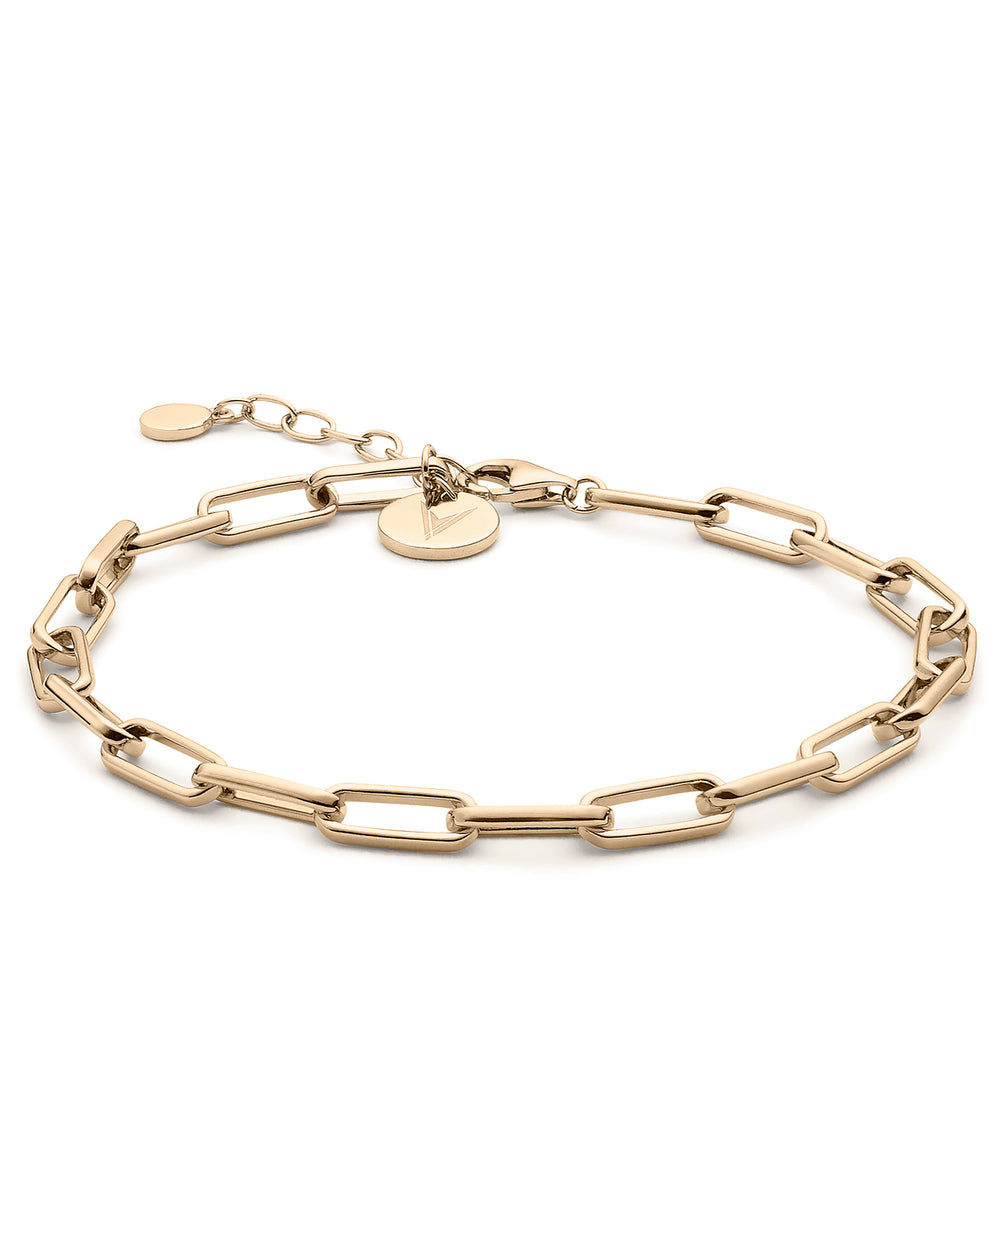 The Chain Link Bracelet - Gold